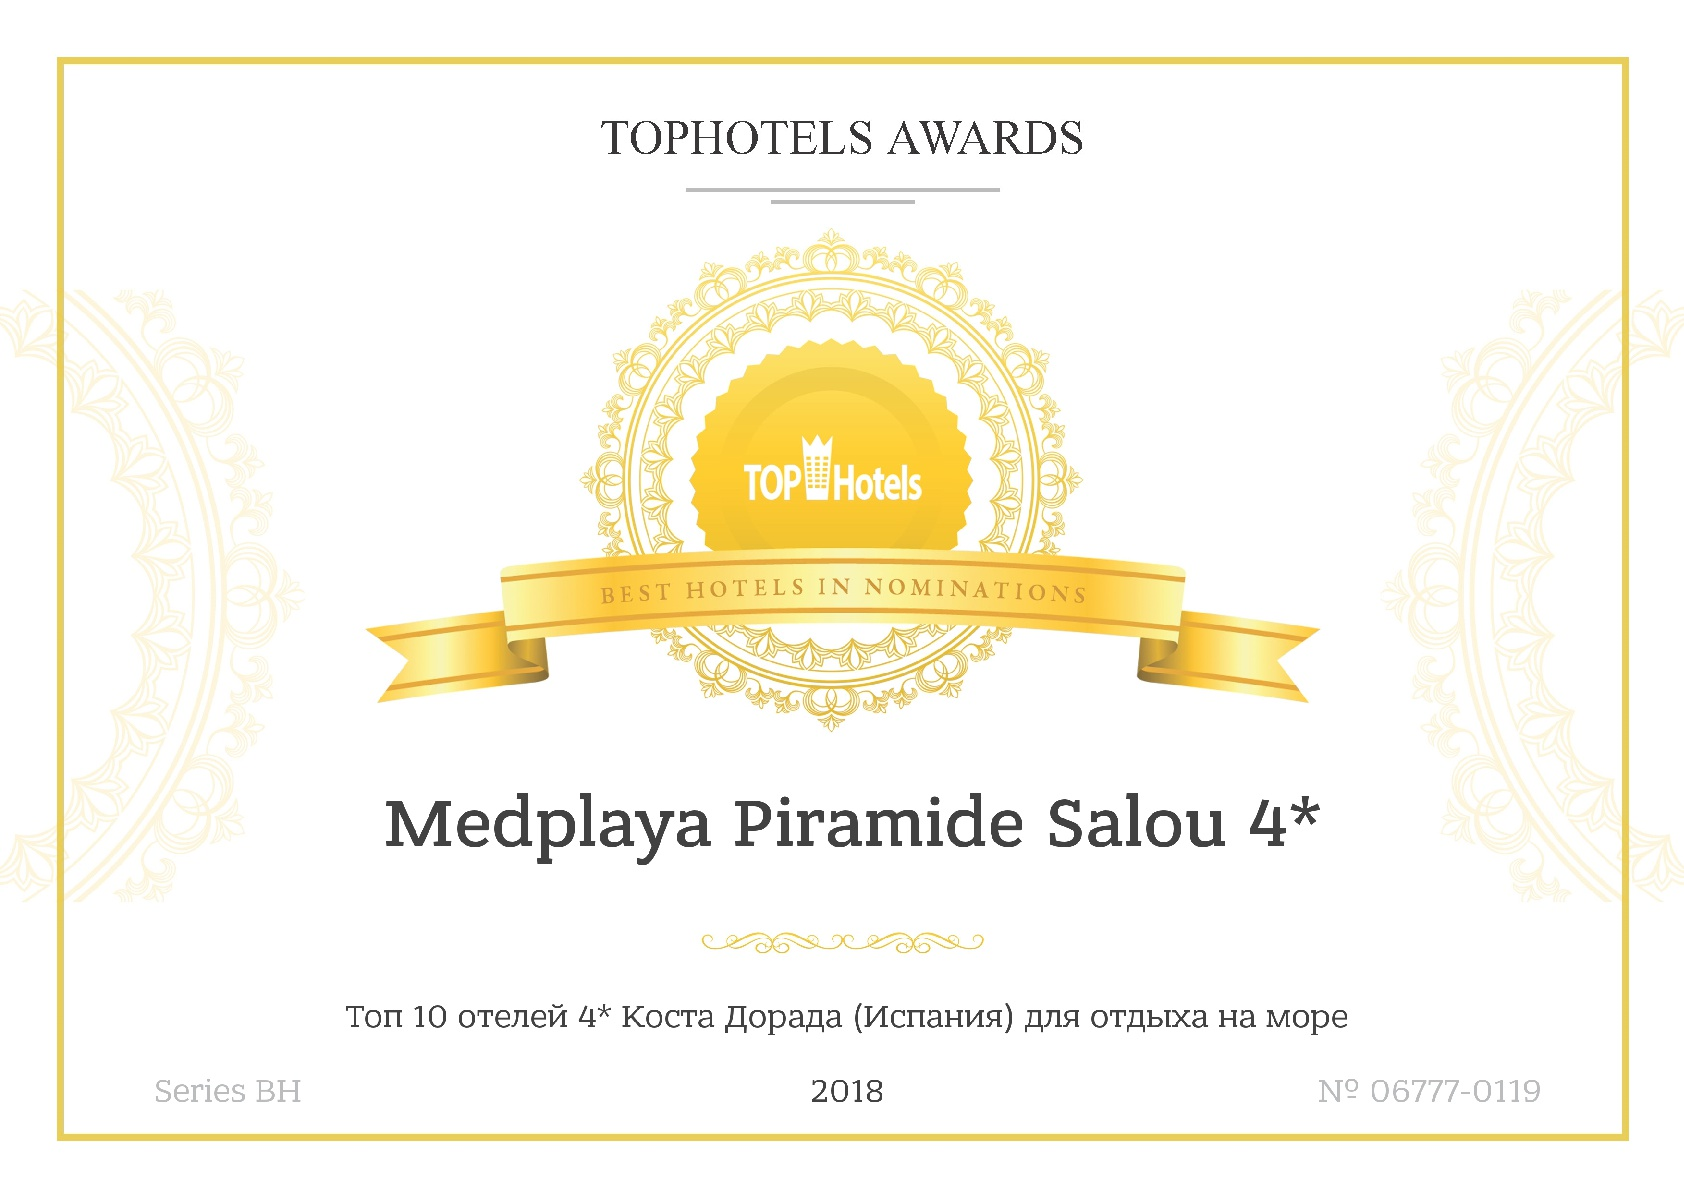 Certificate Recommended by Top Hotels 2018